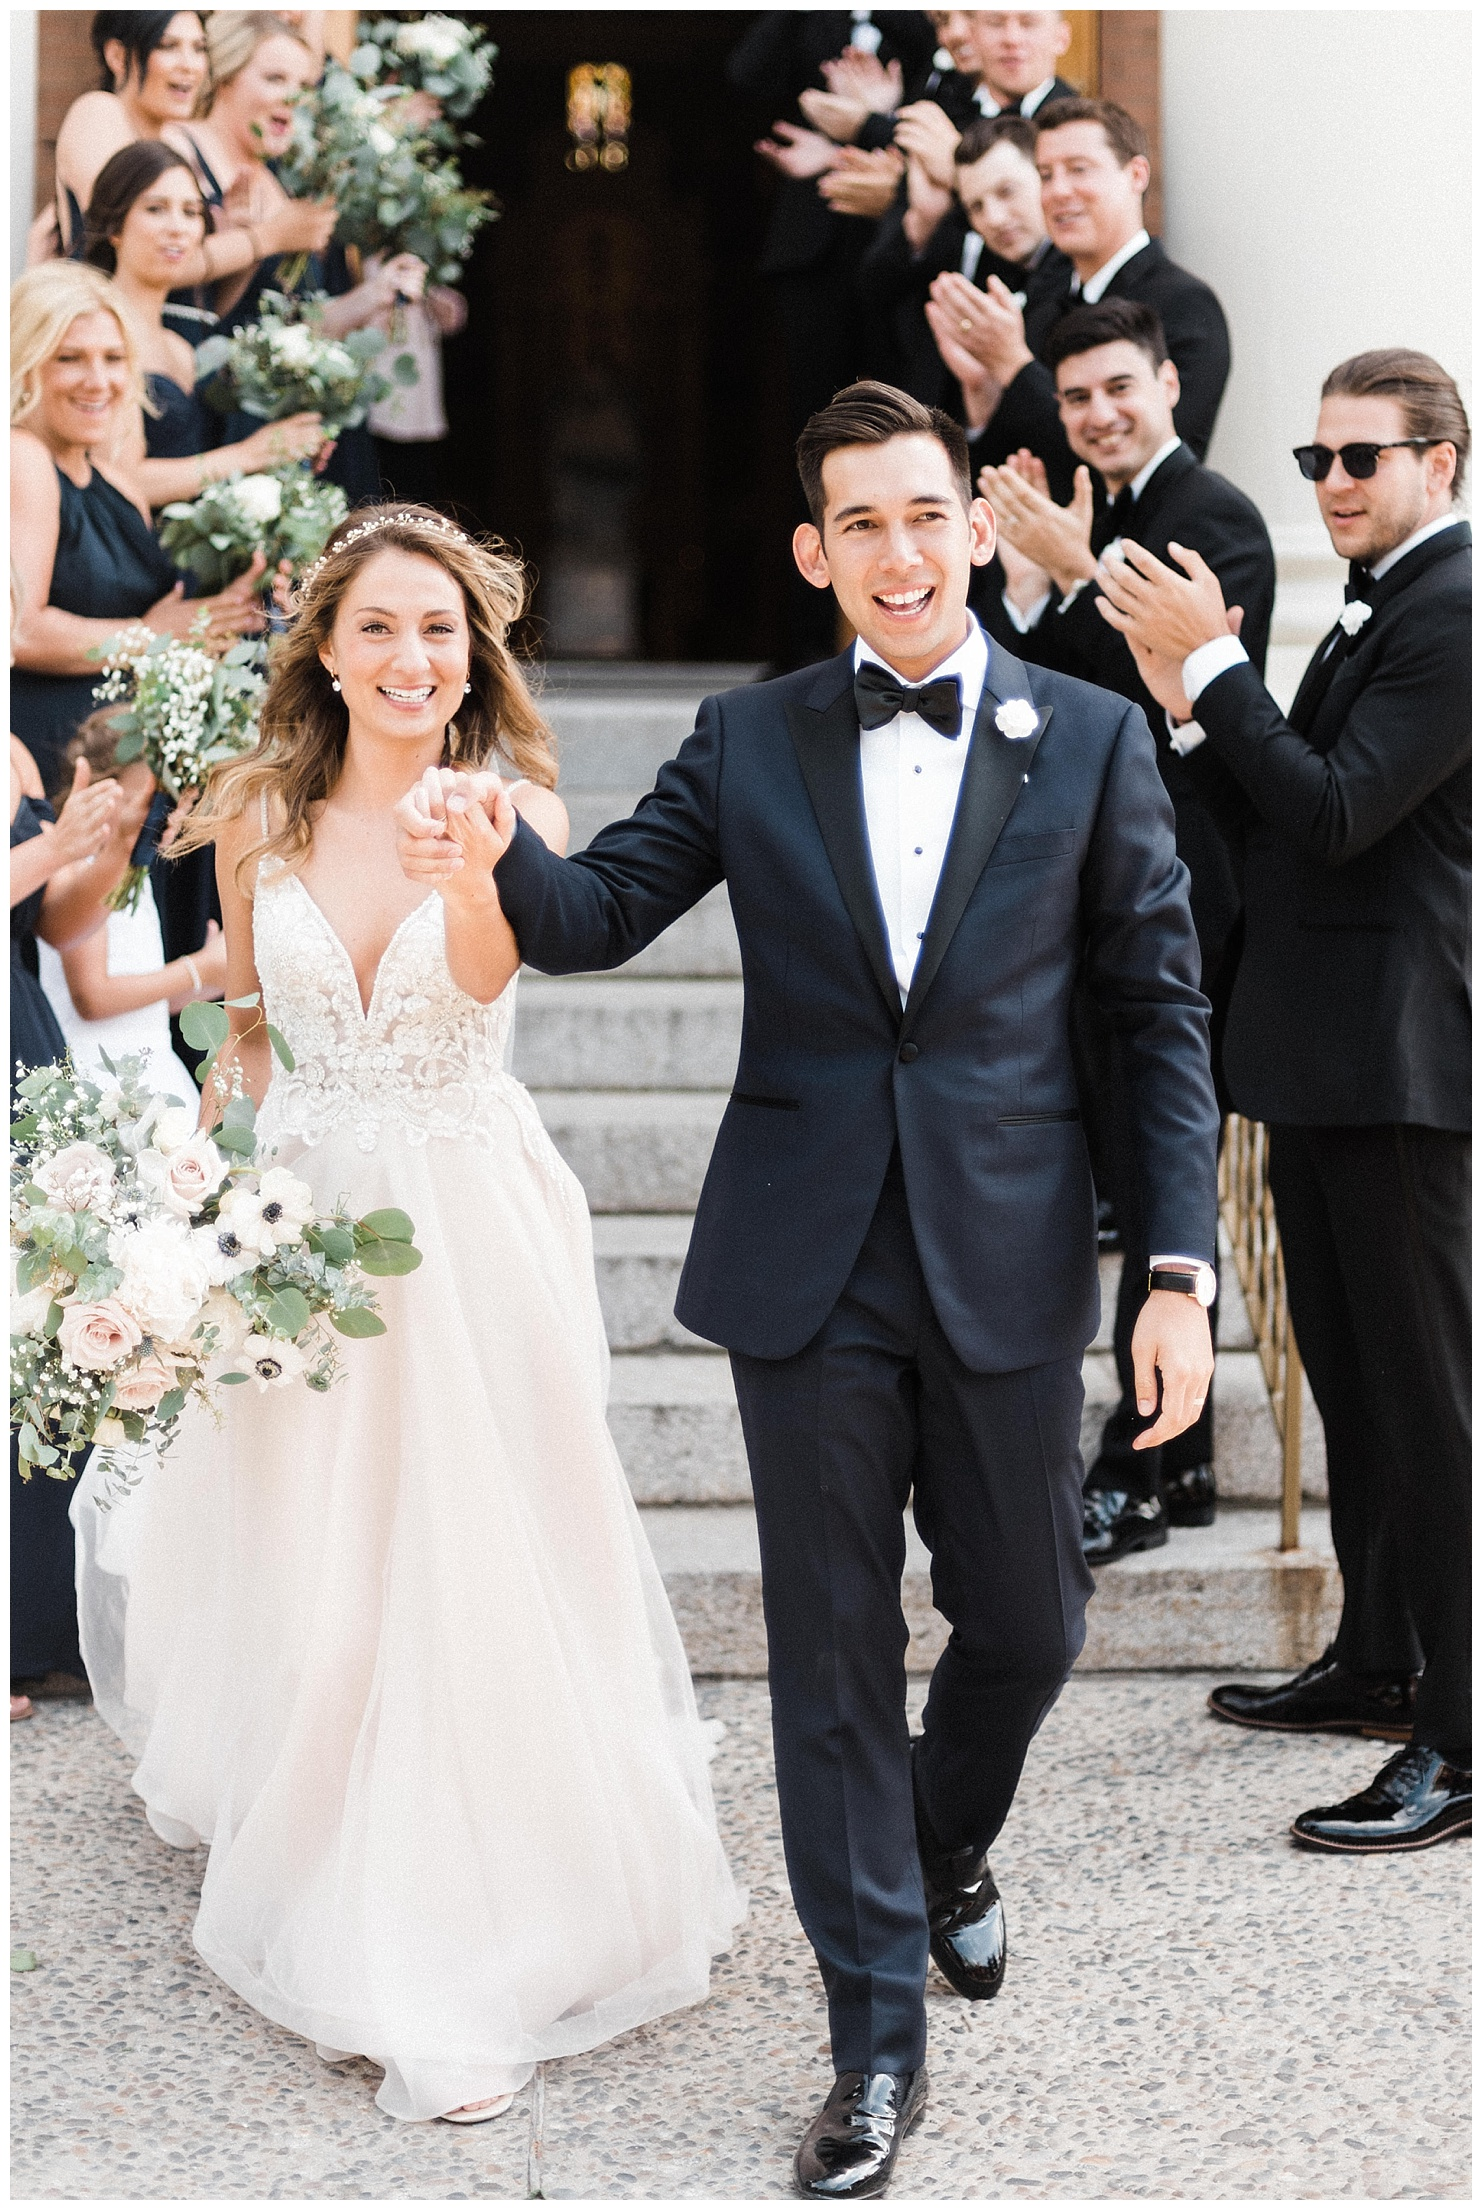 Photo of a bride & groom exiting their wedding ceremony at St. Aloyius Cathedral by Forthright Photo